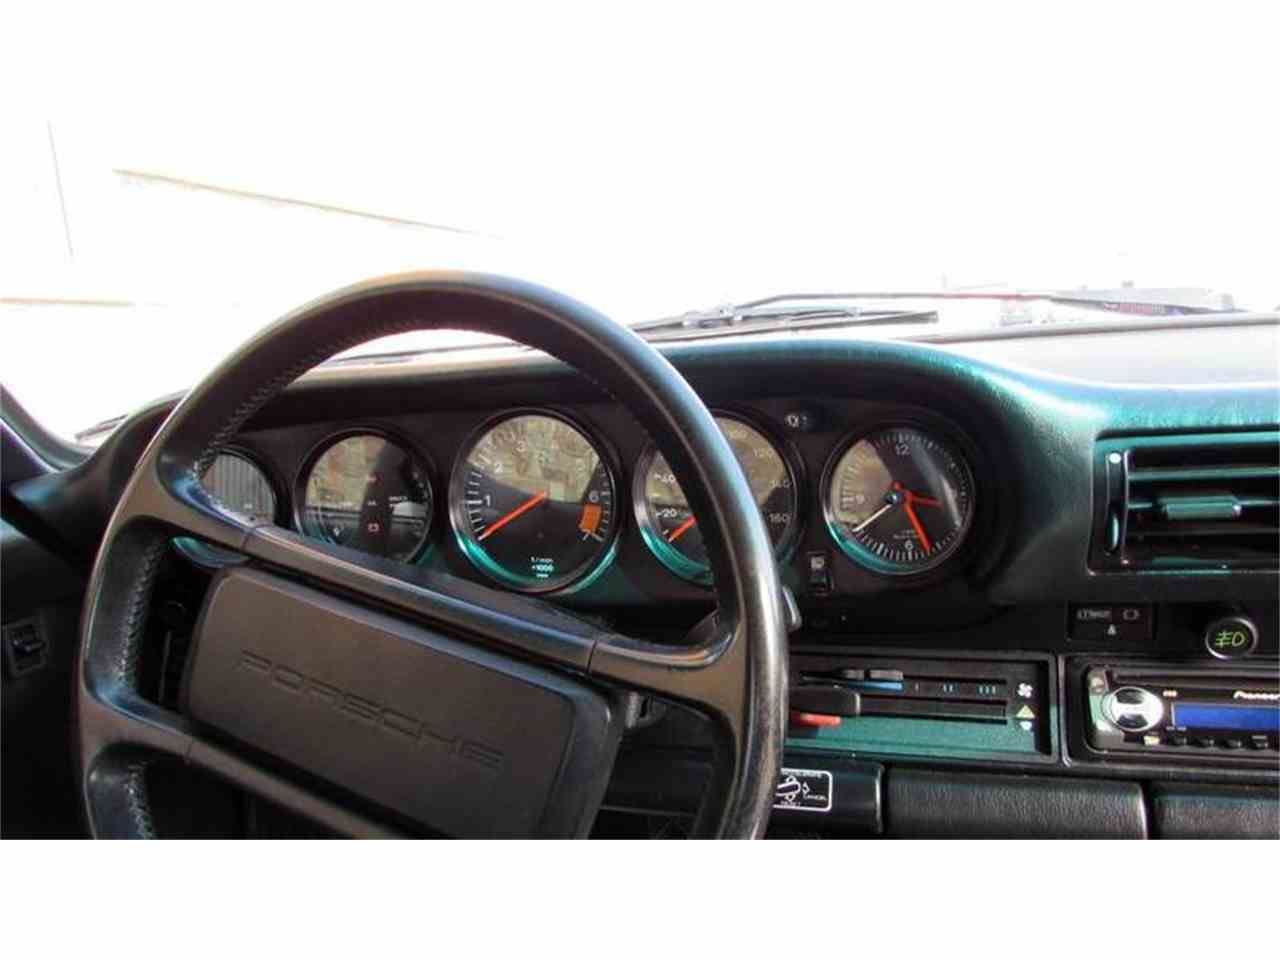 Large Picture of '86 911 located in Wisconsin Auction Vehicle - MBV8